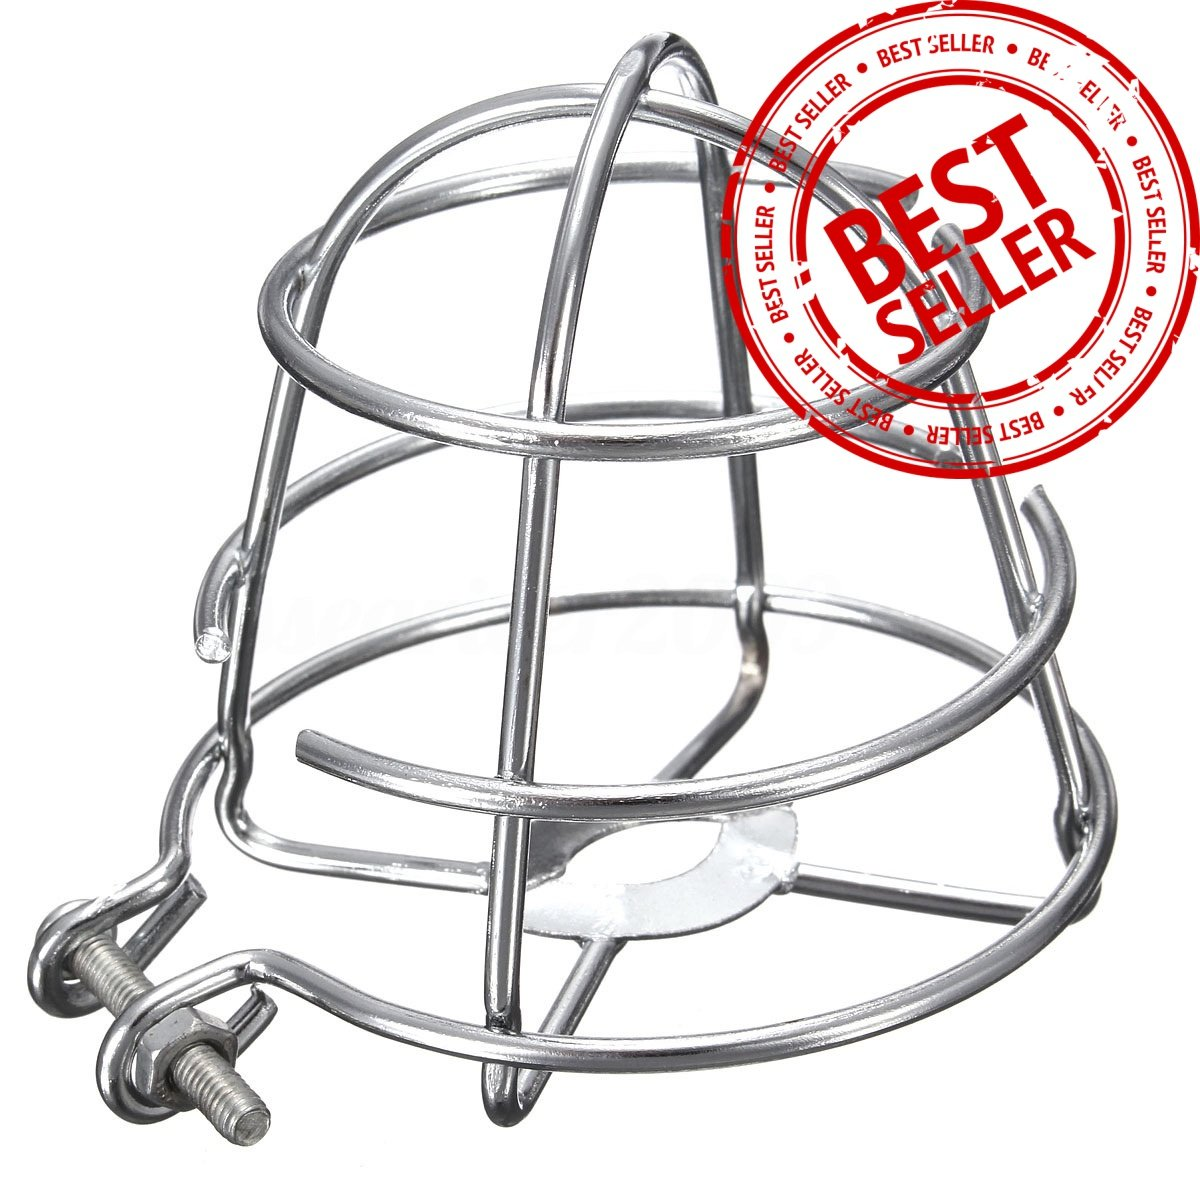 (5 Pack) GREATEST Fire Sprinkler Head Guard Chrome Plated Easy Screw Cover Guard For 1/2'' IPS Heads